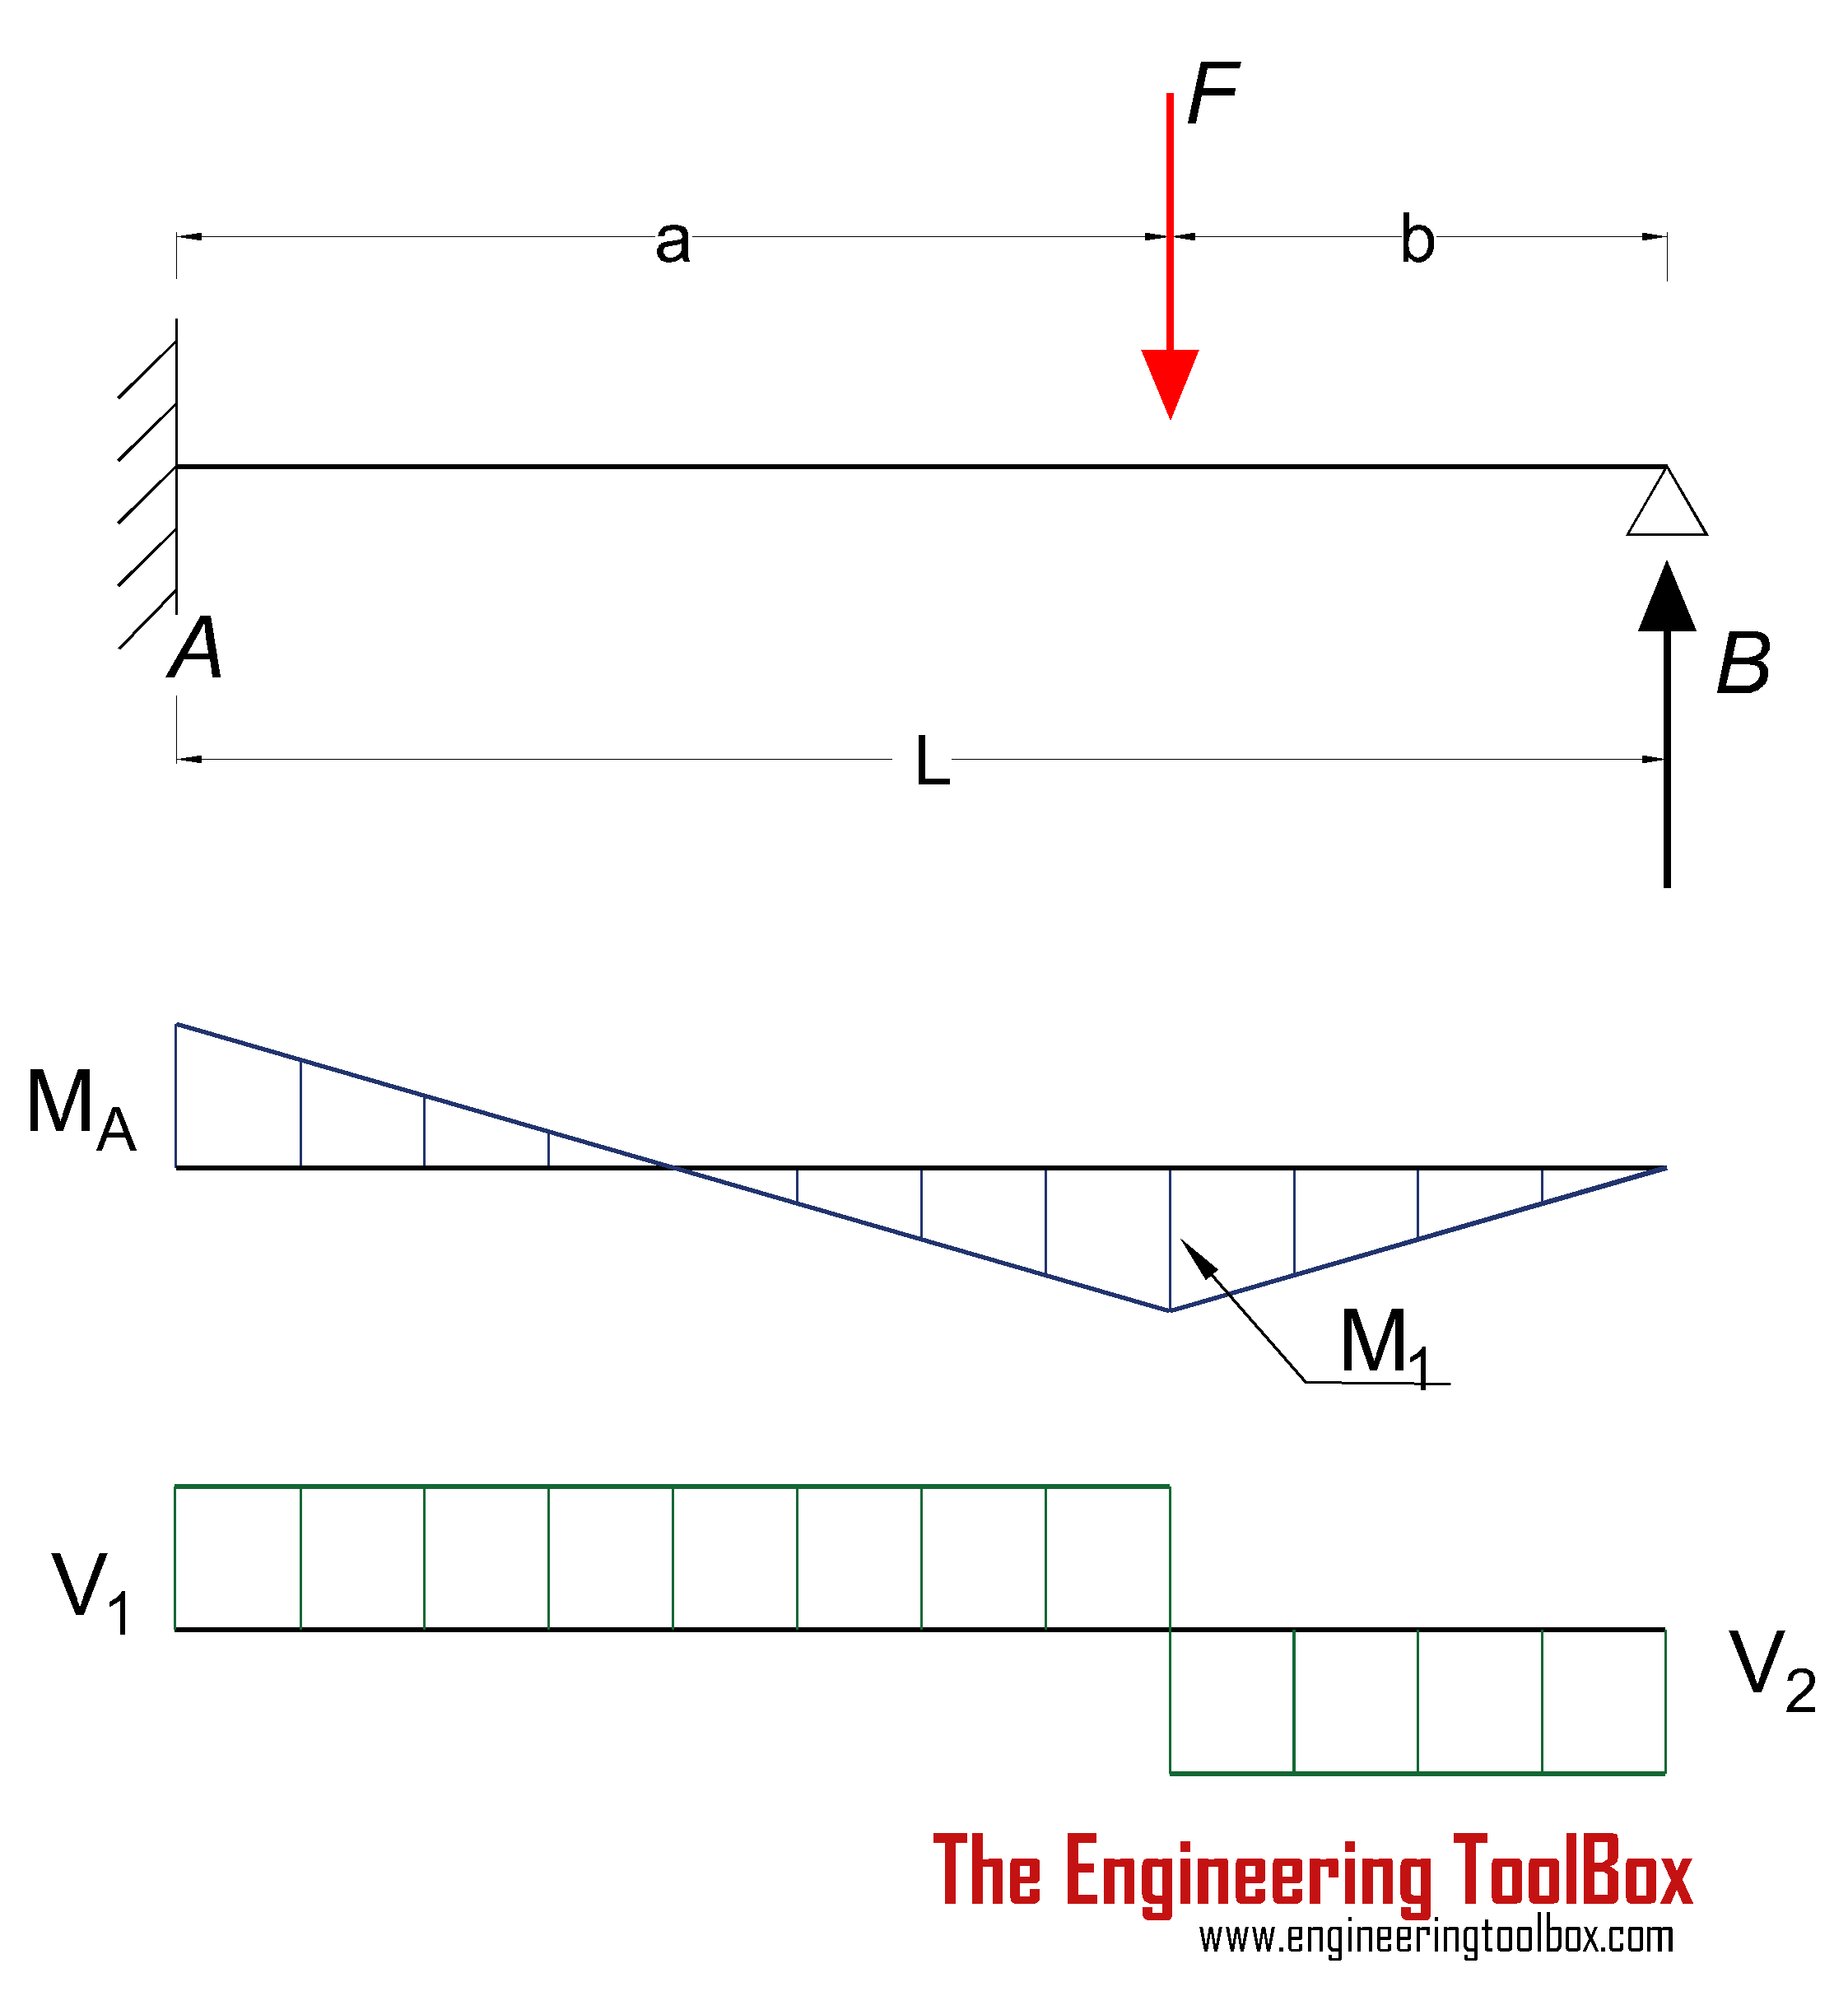 Beam fixed at one end and supported at the other - single point load